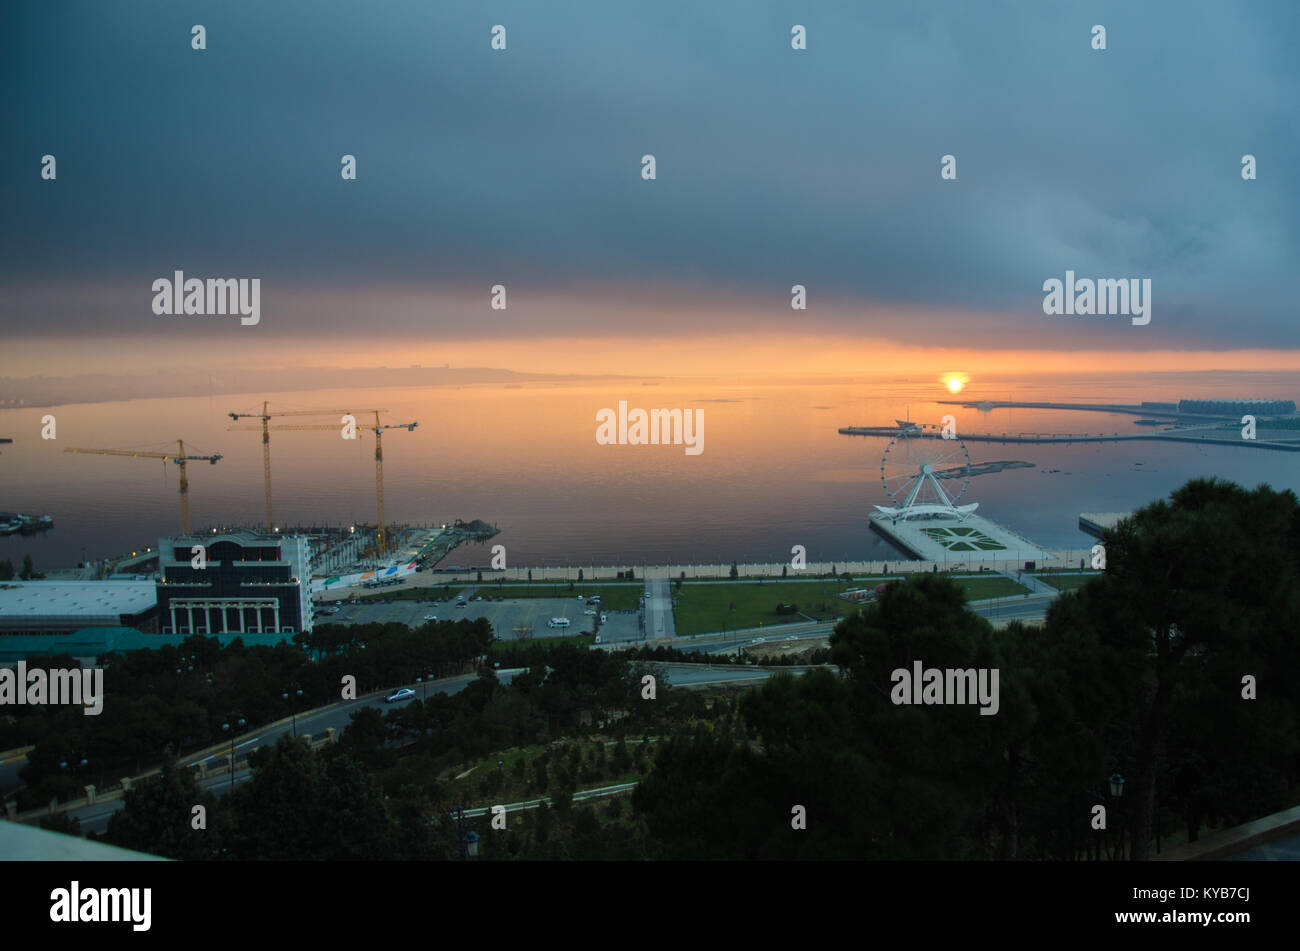 Sunset .The sun goes out on the edge of the Caspian Sea . Amazing view of clear sea landscape with cloudy sky as - Stock Image